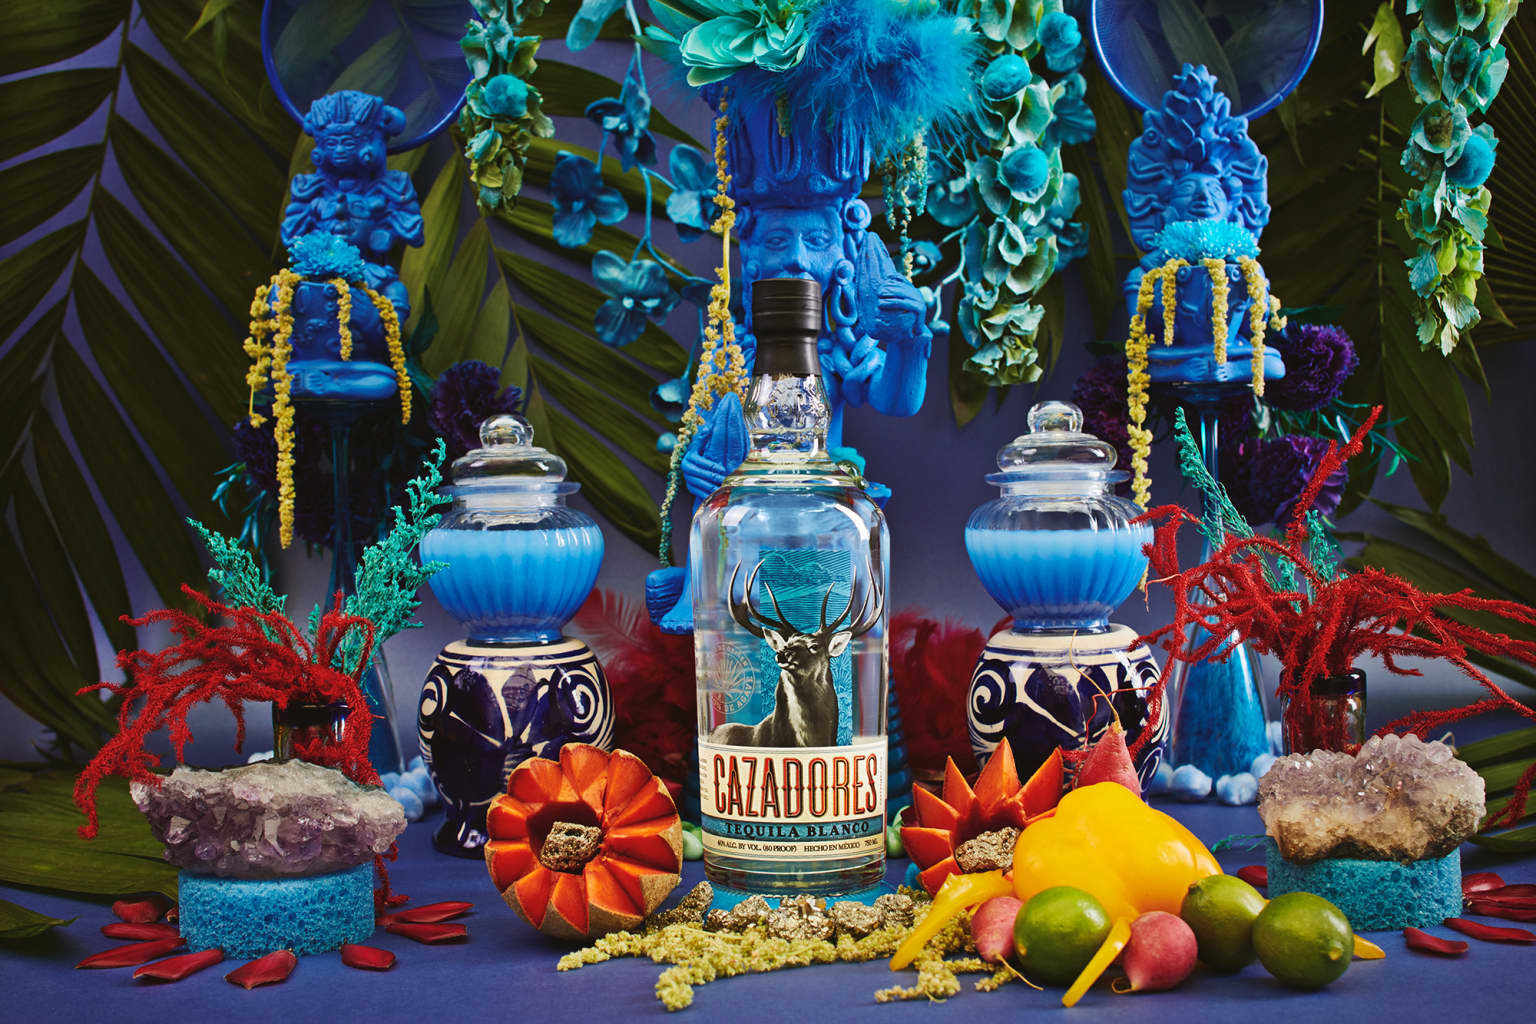 Orly Anan for Tequila Cazadores